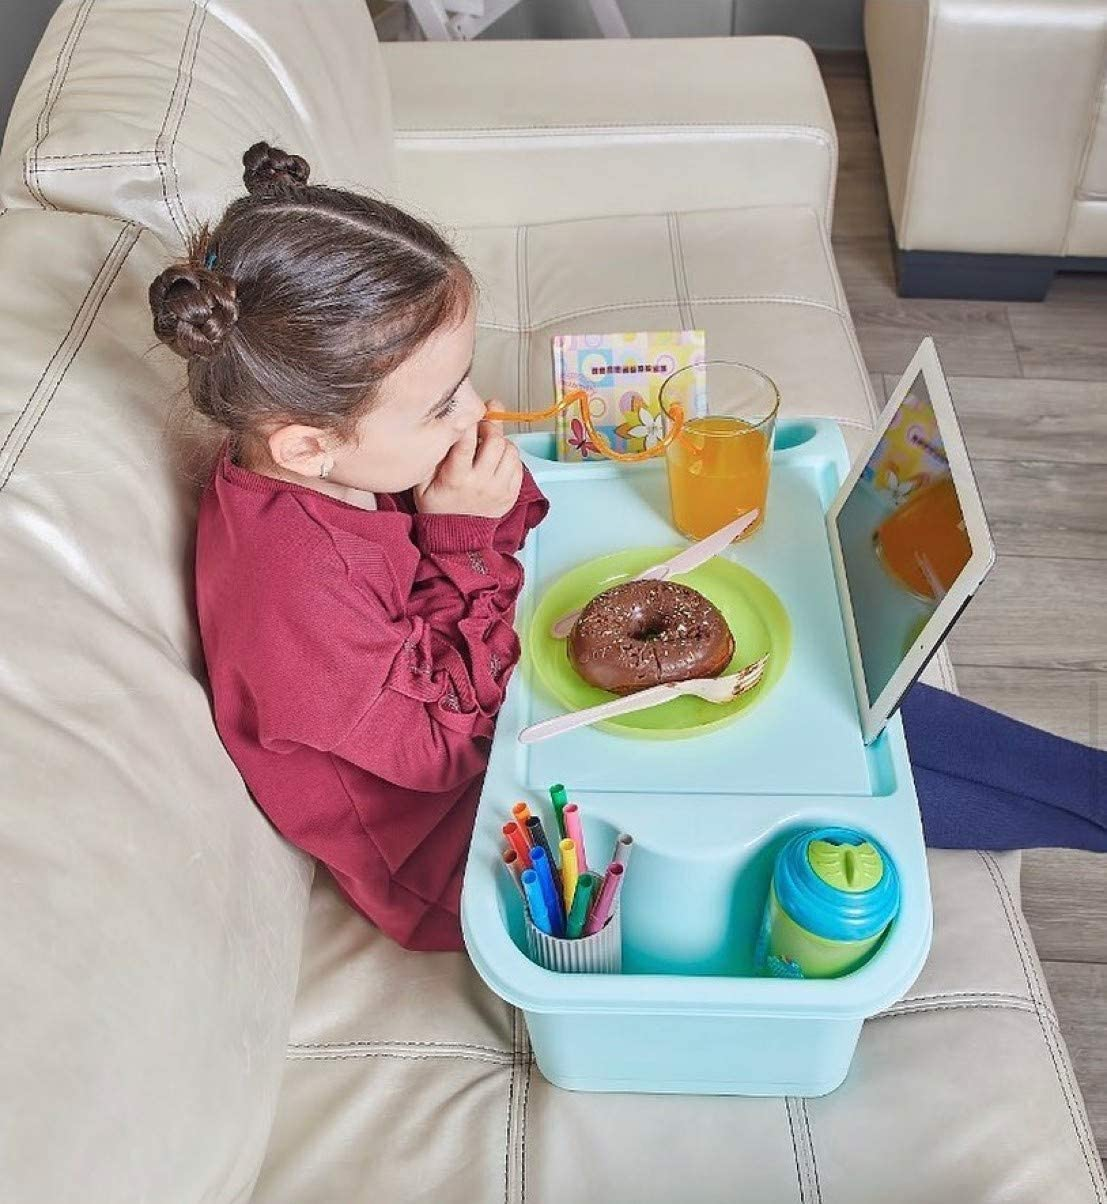 Indoor /& Outdoor Multifunctional Activity Tray for Kids Toddlers Boys Girls Sofa Table Tray Large Student Desk Bed Multi Purpose Travel Tray Blue Portable Children Activity Table